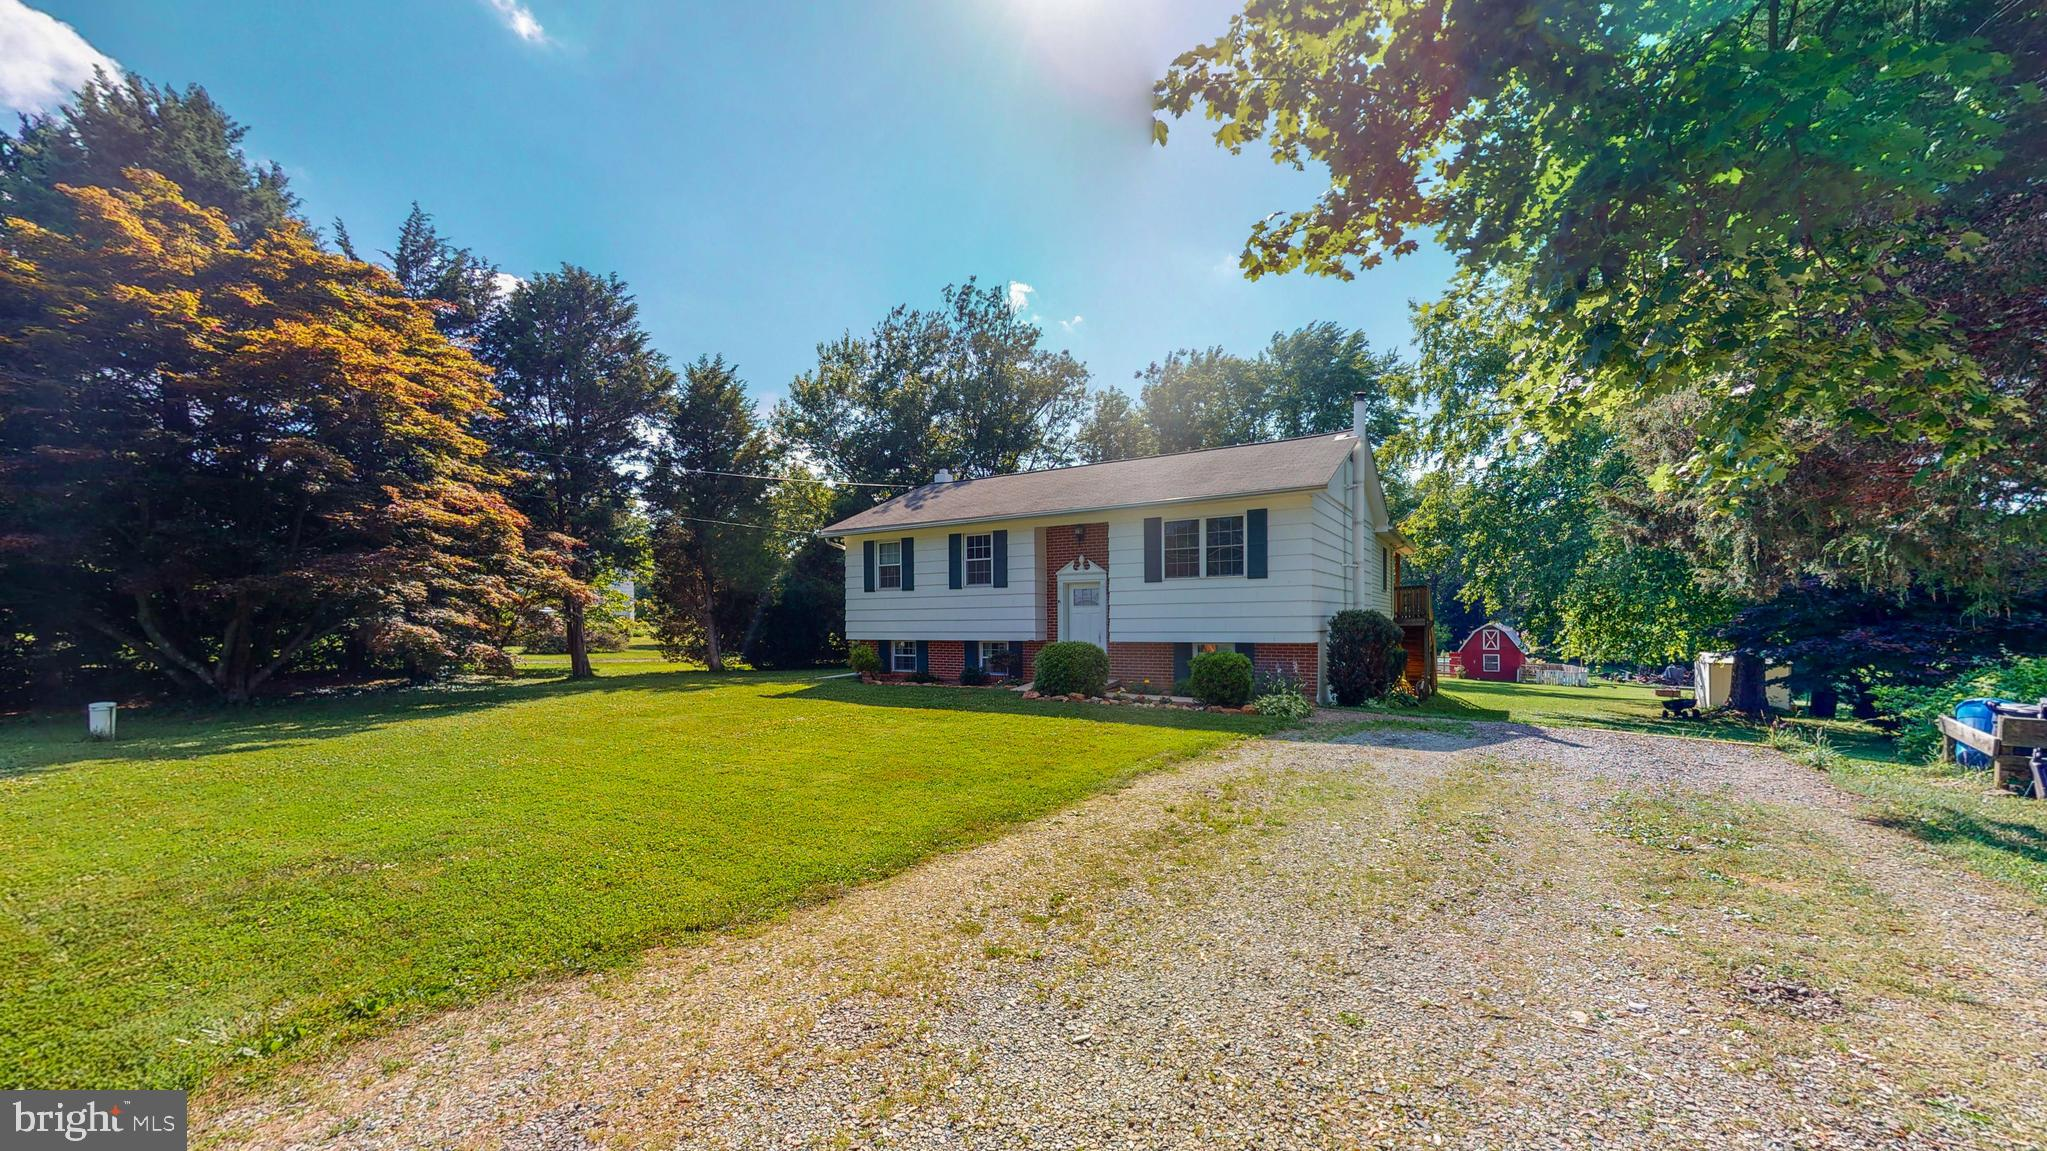 Spectacular Four Bedroom, Two Bath with Huge Addition in Peaceful Harford County on Almost One Acre!